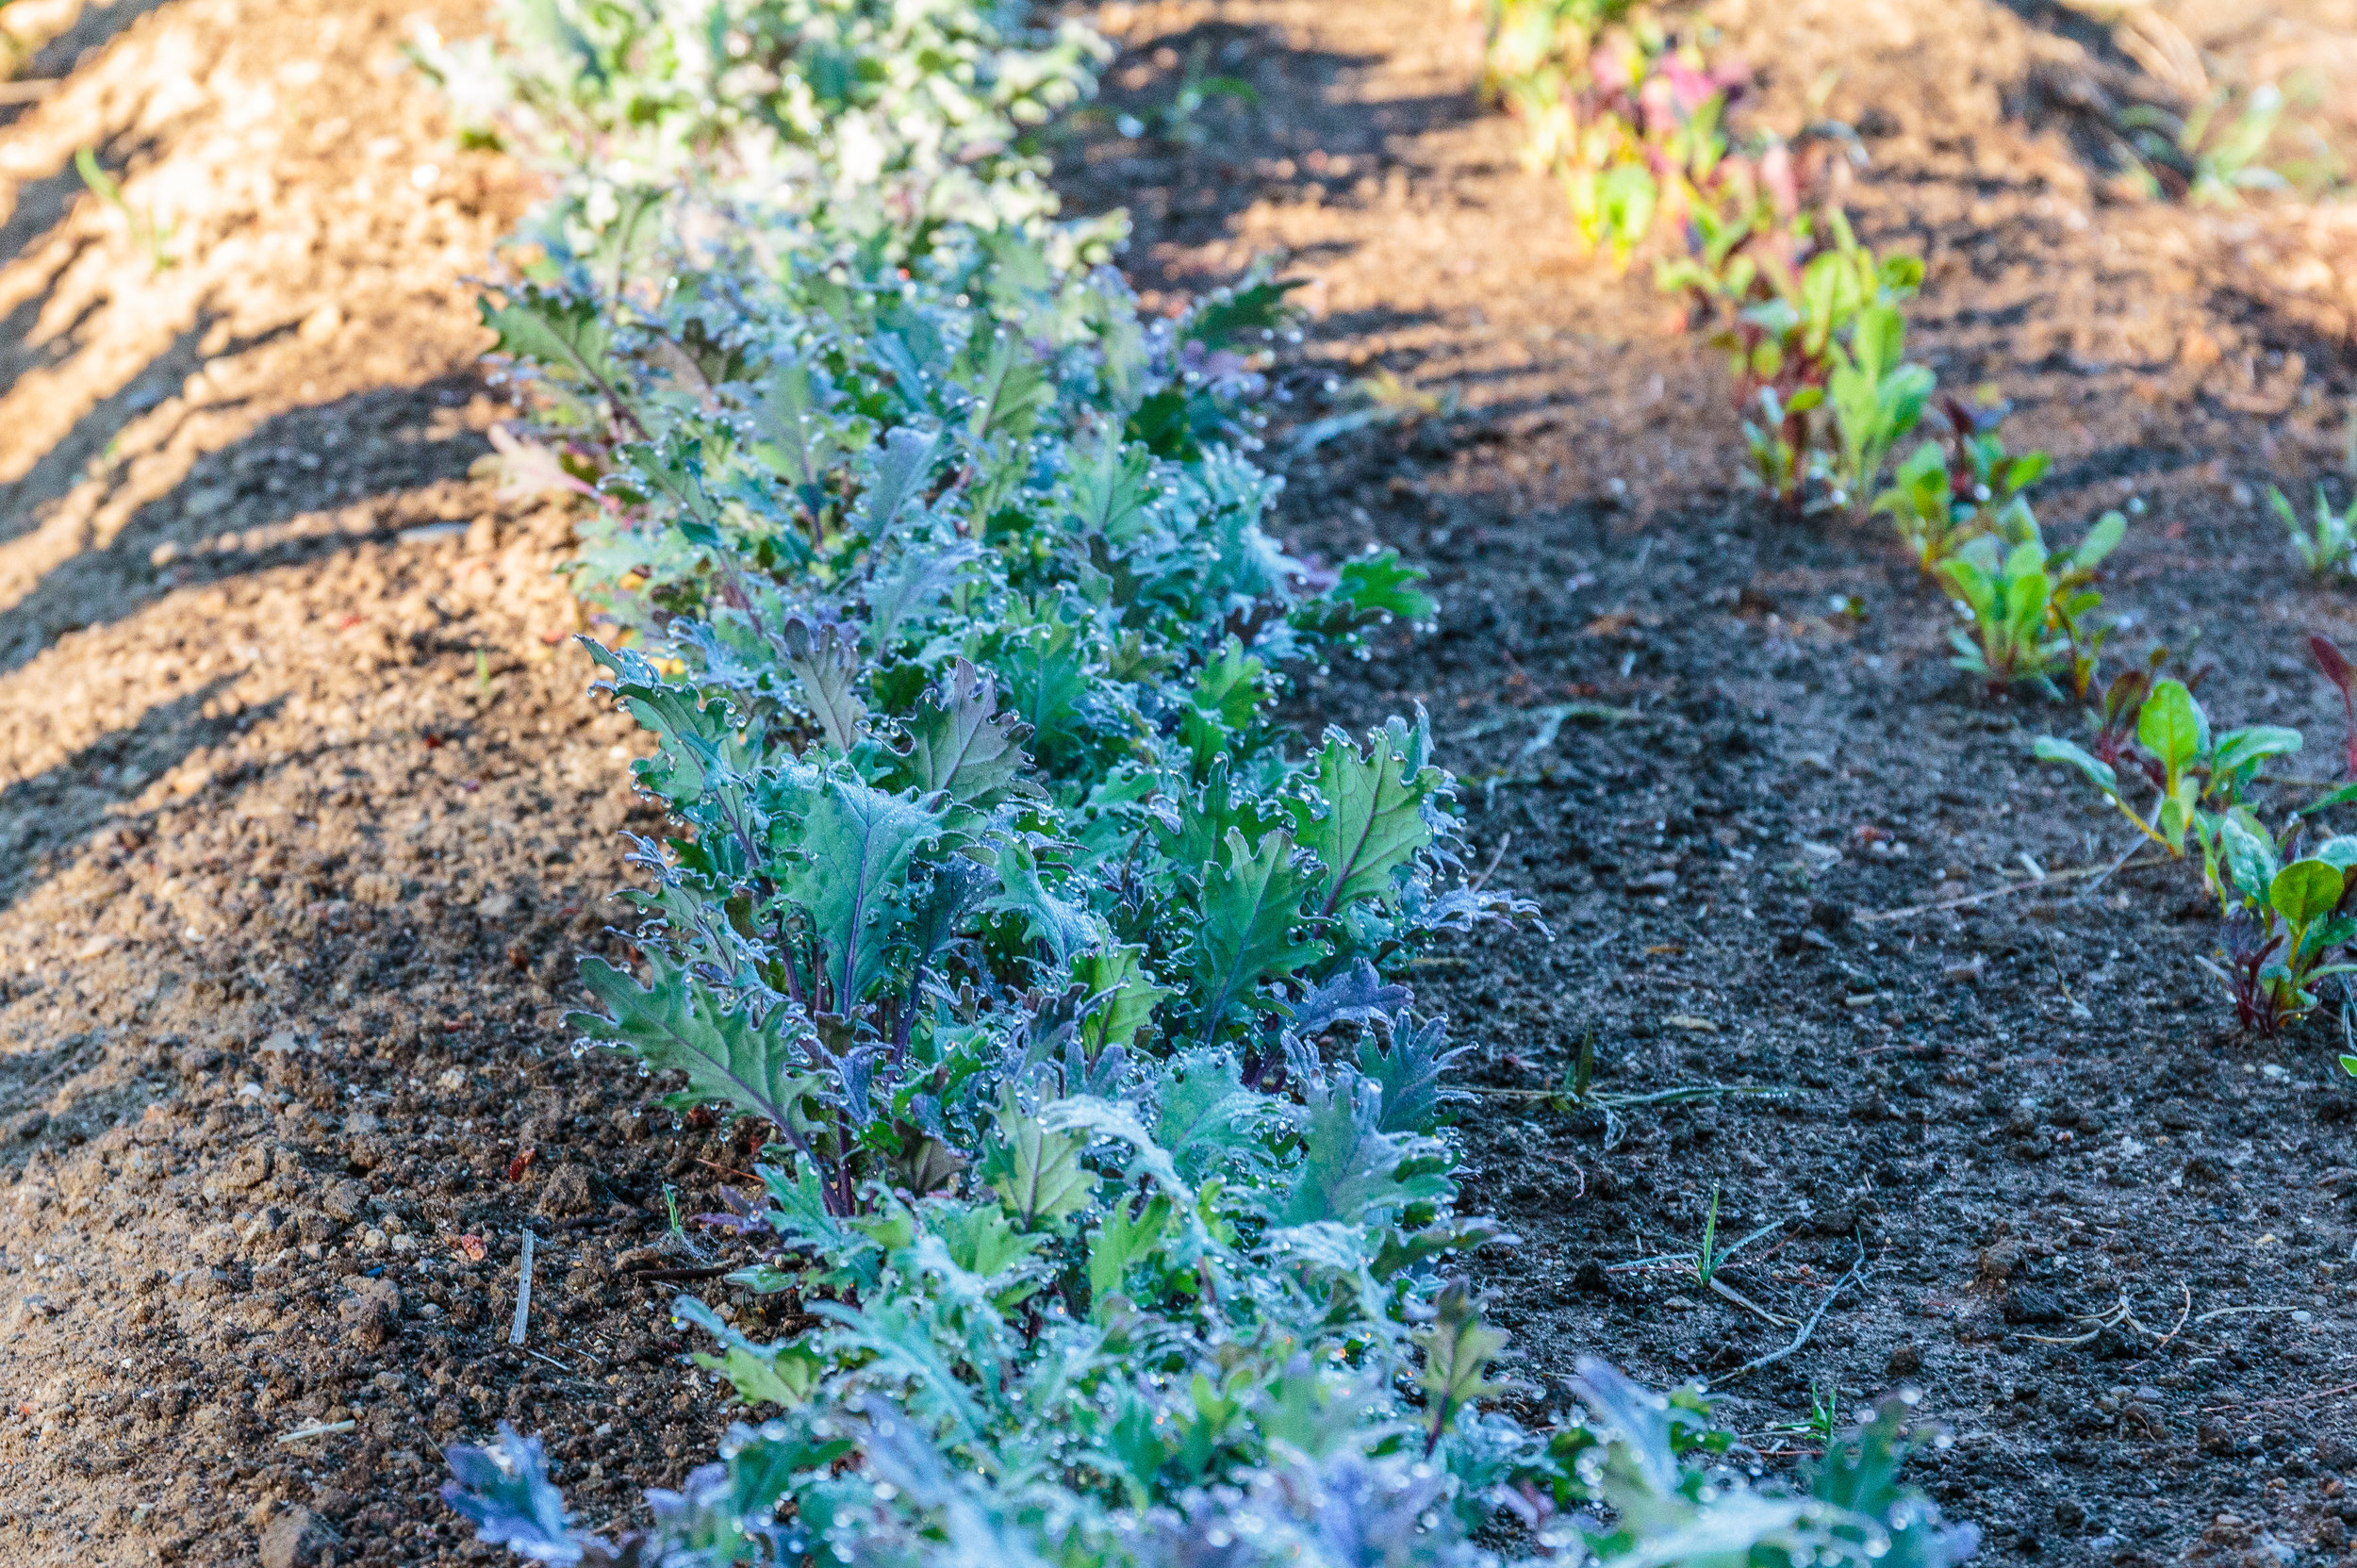 Baby kale is one of our favorite crops. It has the eating quality of lettuce with the nutrition profile of kale. And it's beautiful.